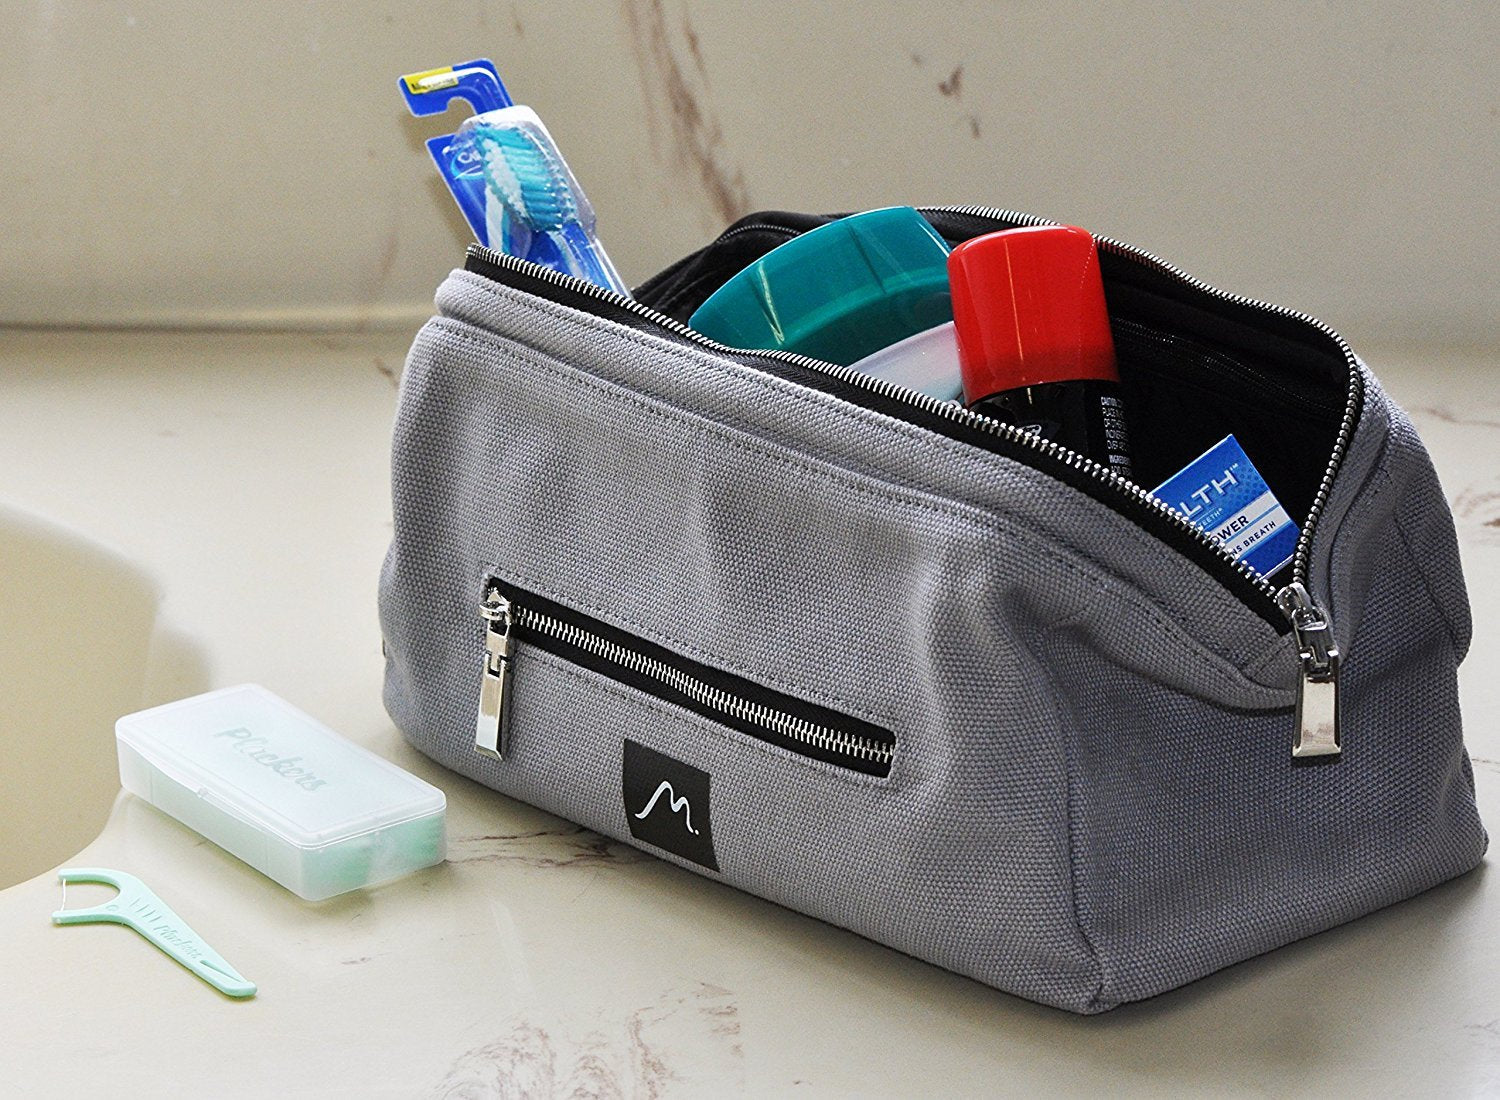 Travelling Toiletry Bag Jr. Minimalist Bathroom Accessory by Metier Life